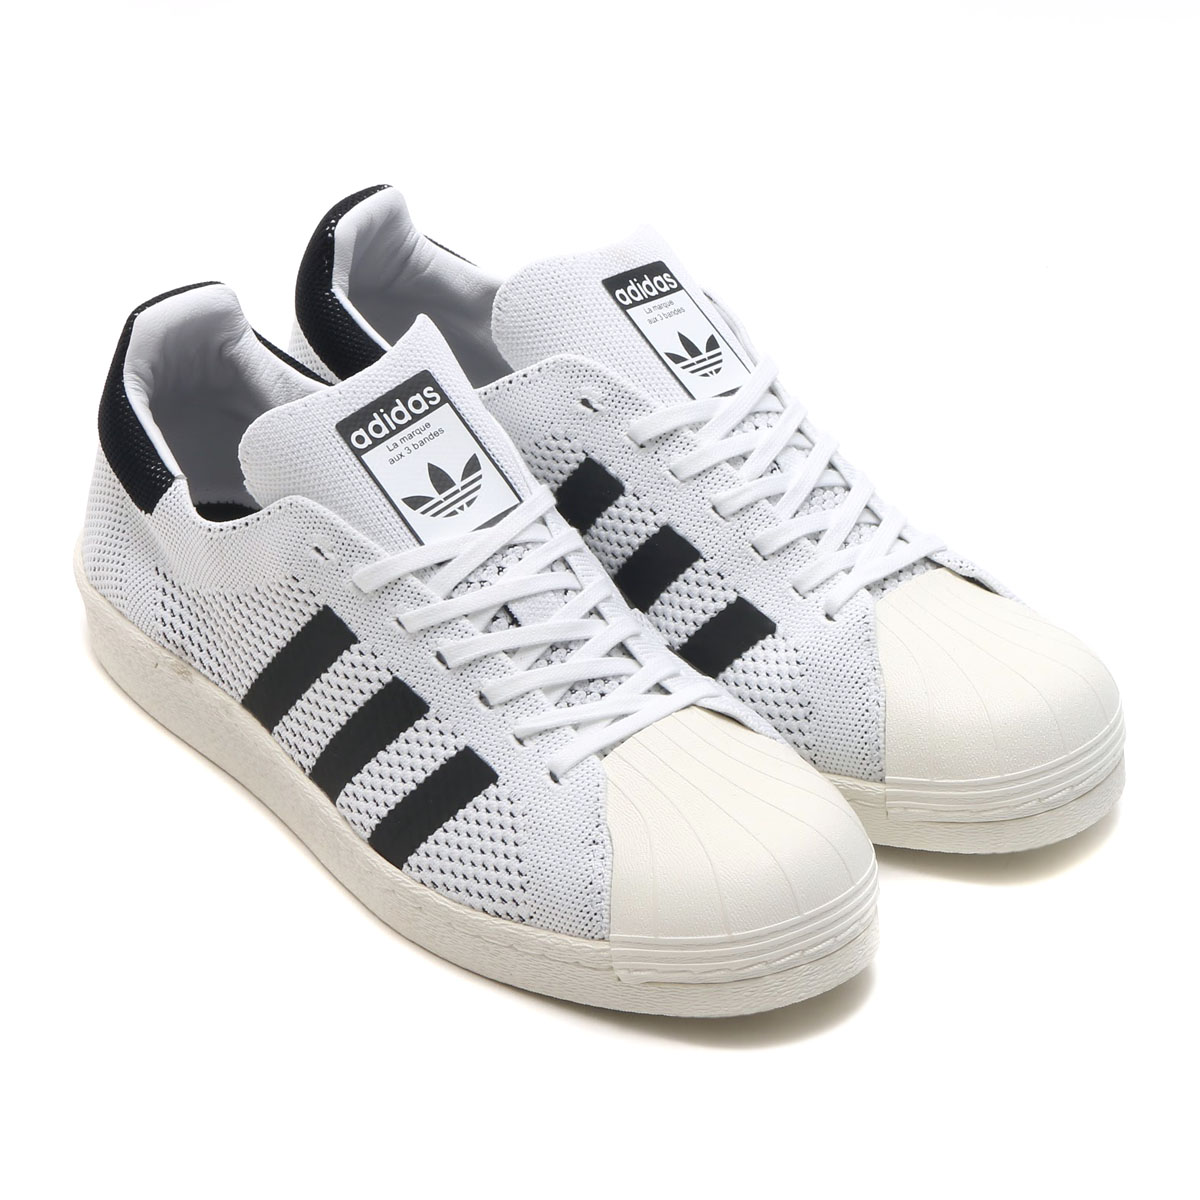 adidas Originals SUPERSTAR BOOST PK (Adidas originals superstar boost PK) (RUNNING WHITE) 17SS-I